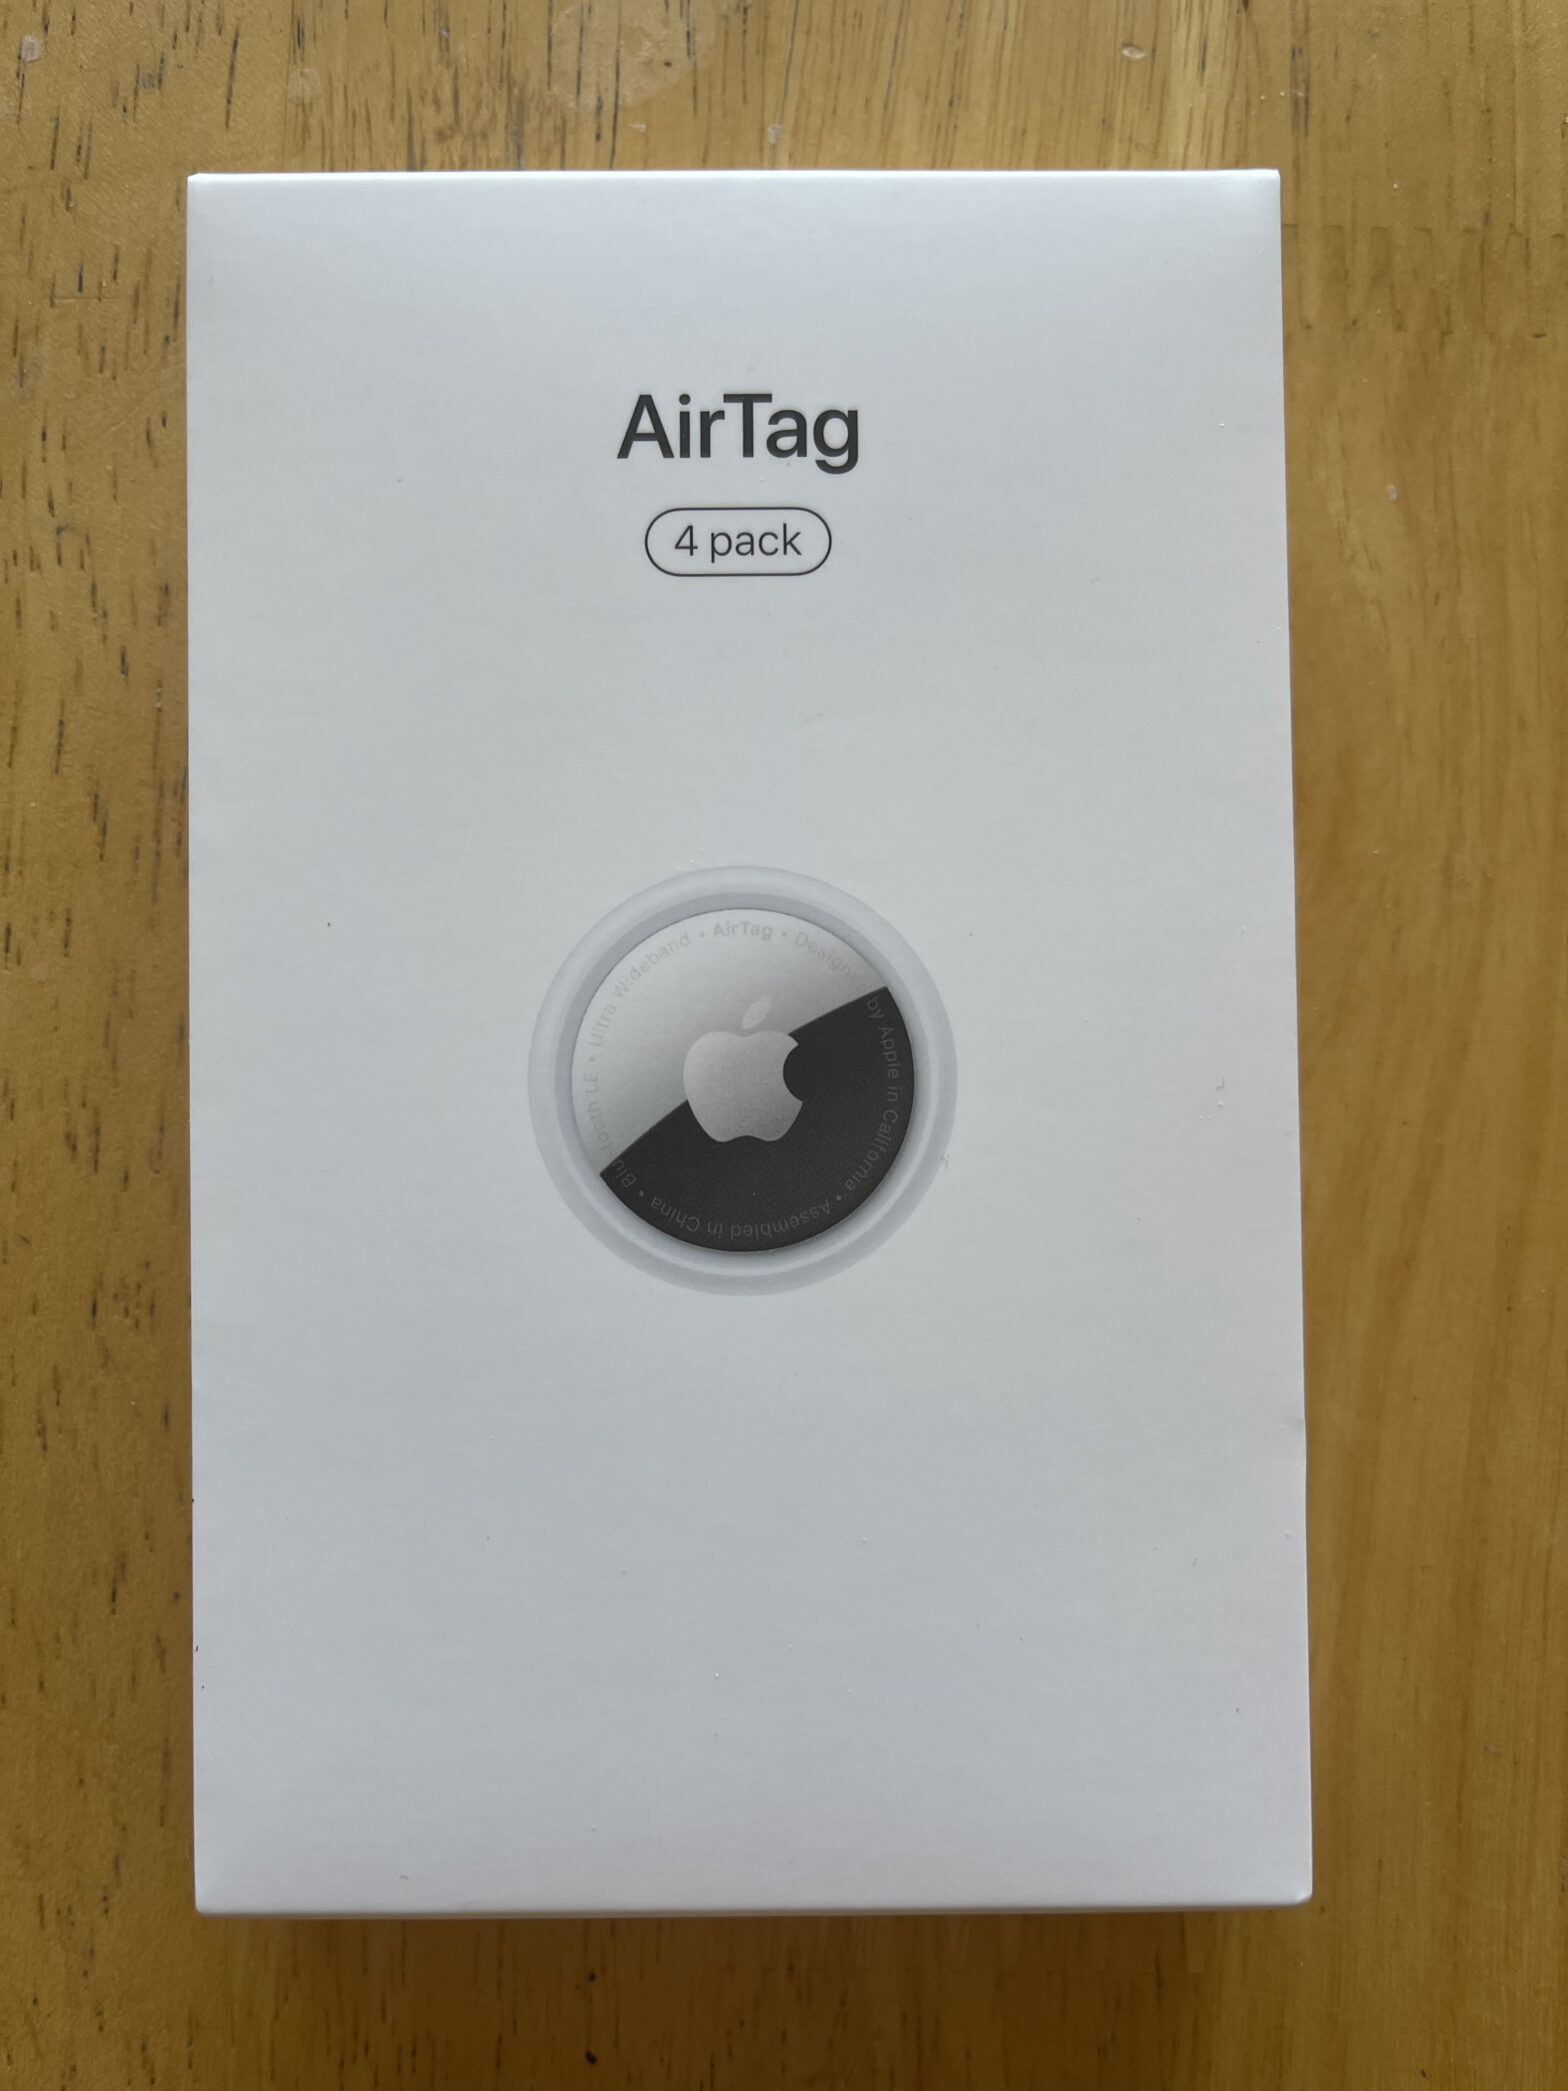 AirTag 4 Pack packaging